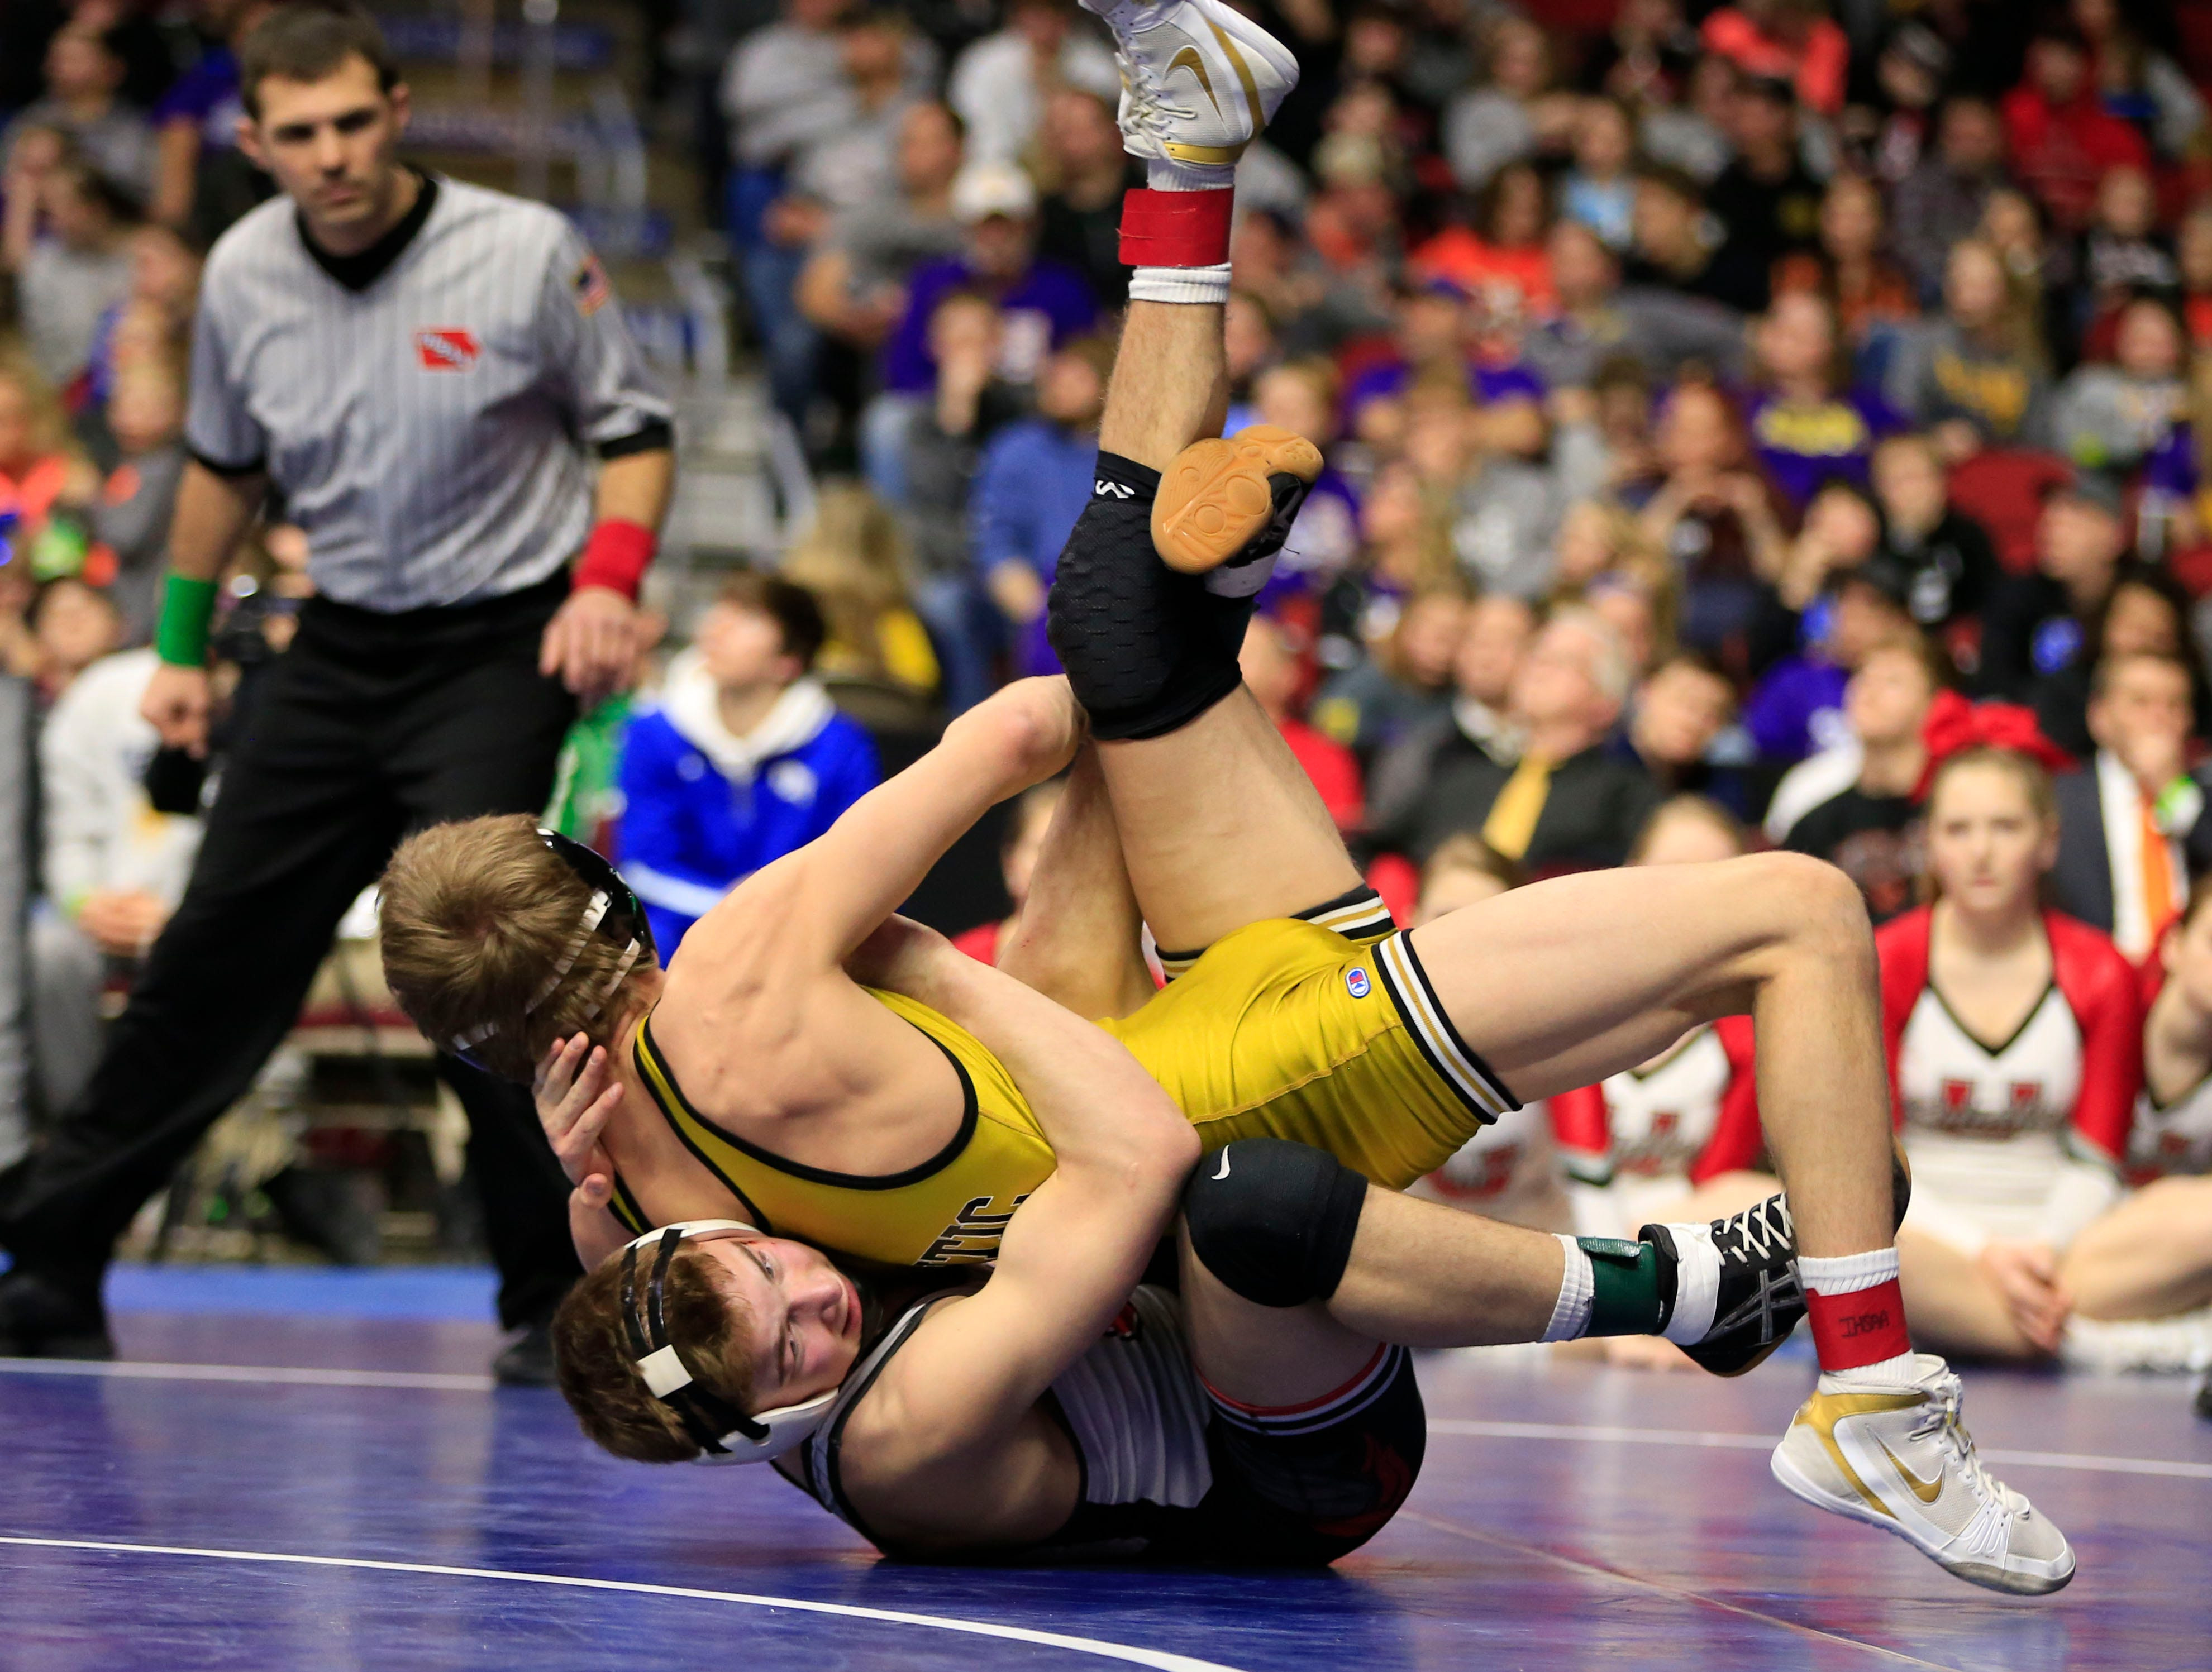 Jack Thomsen of Union beats Chase McLaren of Atlantic for the 2A state wrestling championship at 138 pounds Saturday, Feb. 16, 2019.